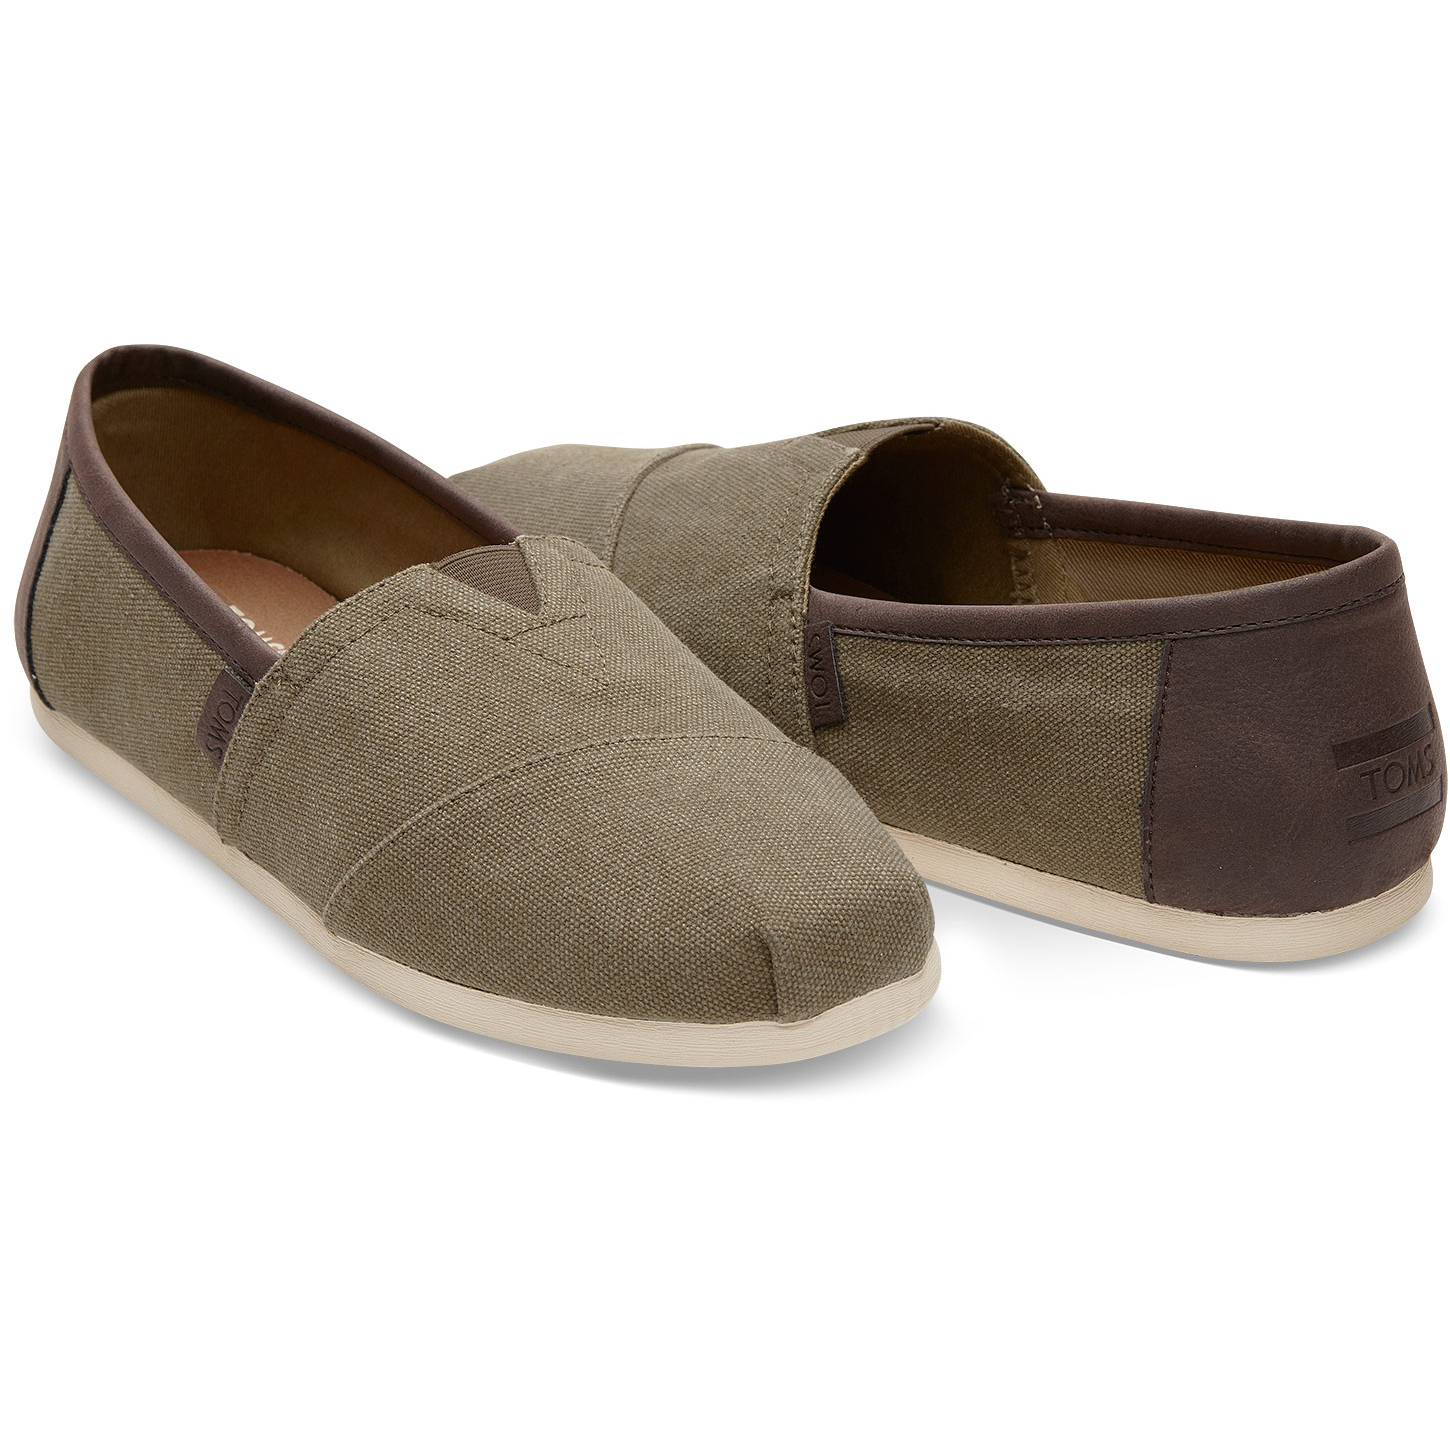 Toms Giveaway Img Tomsgl Tomsshoes